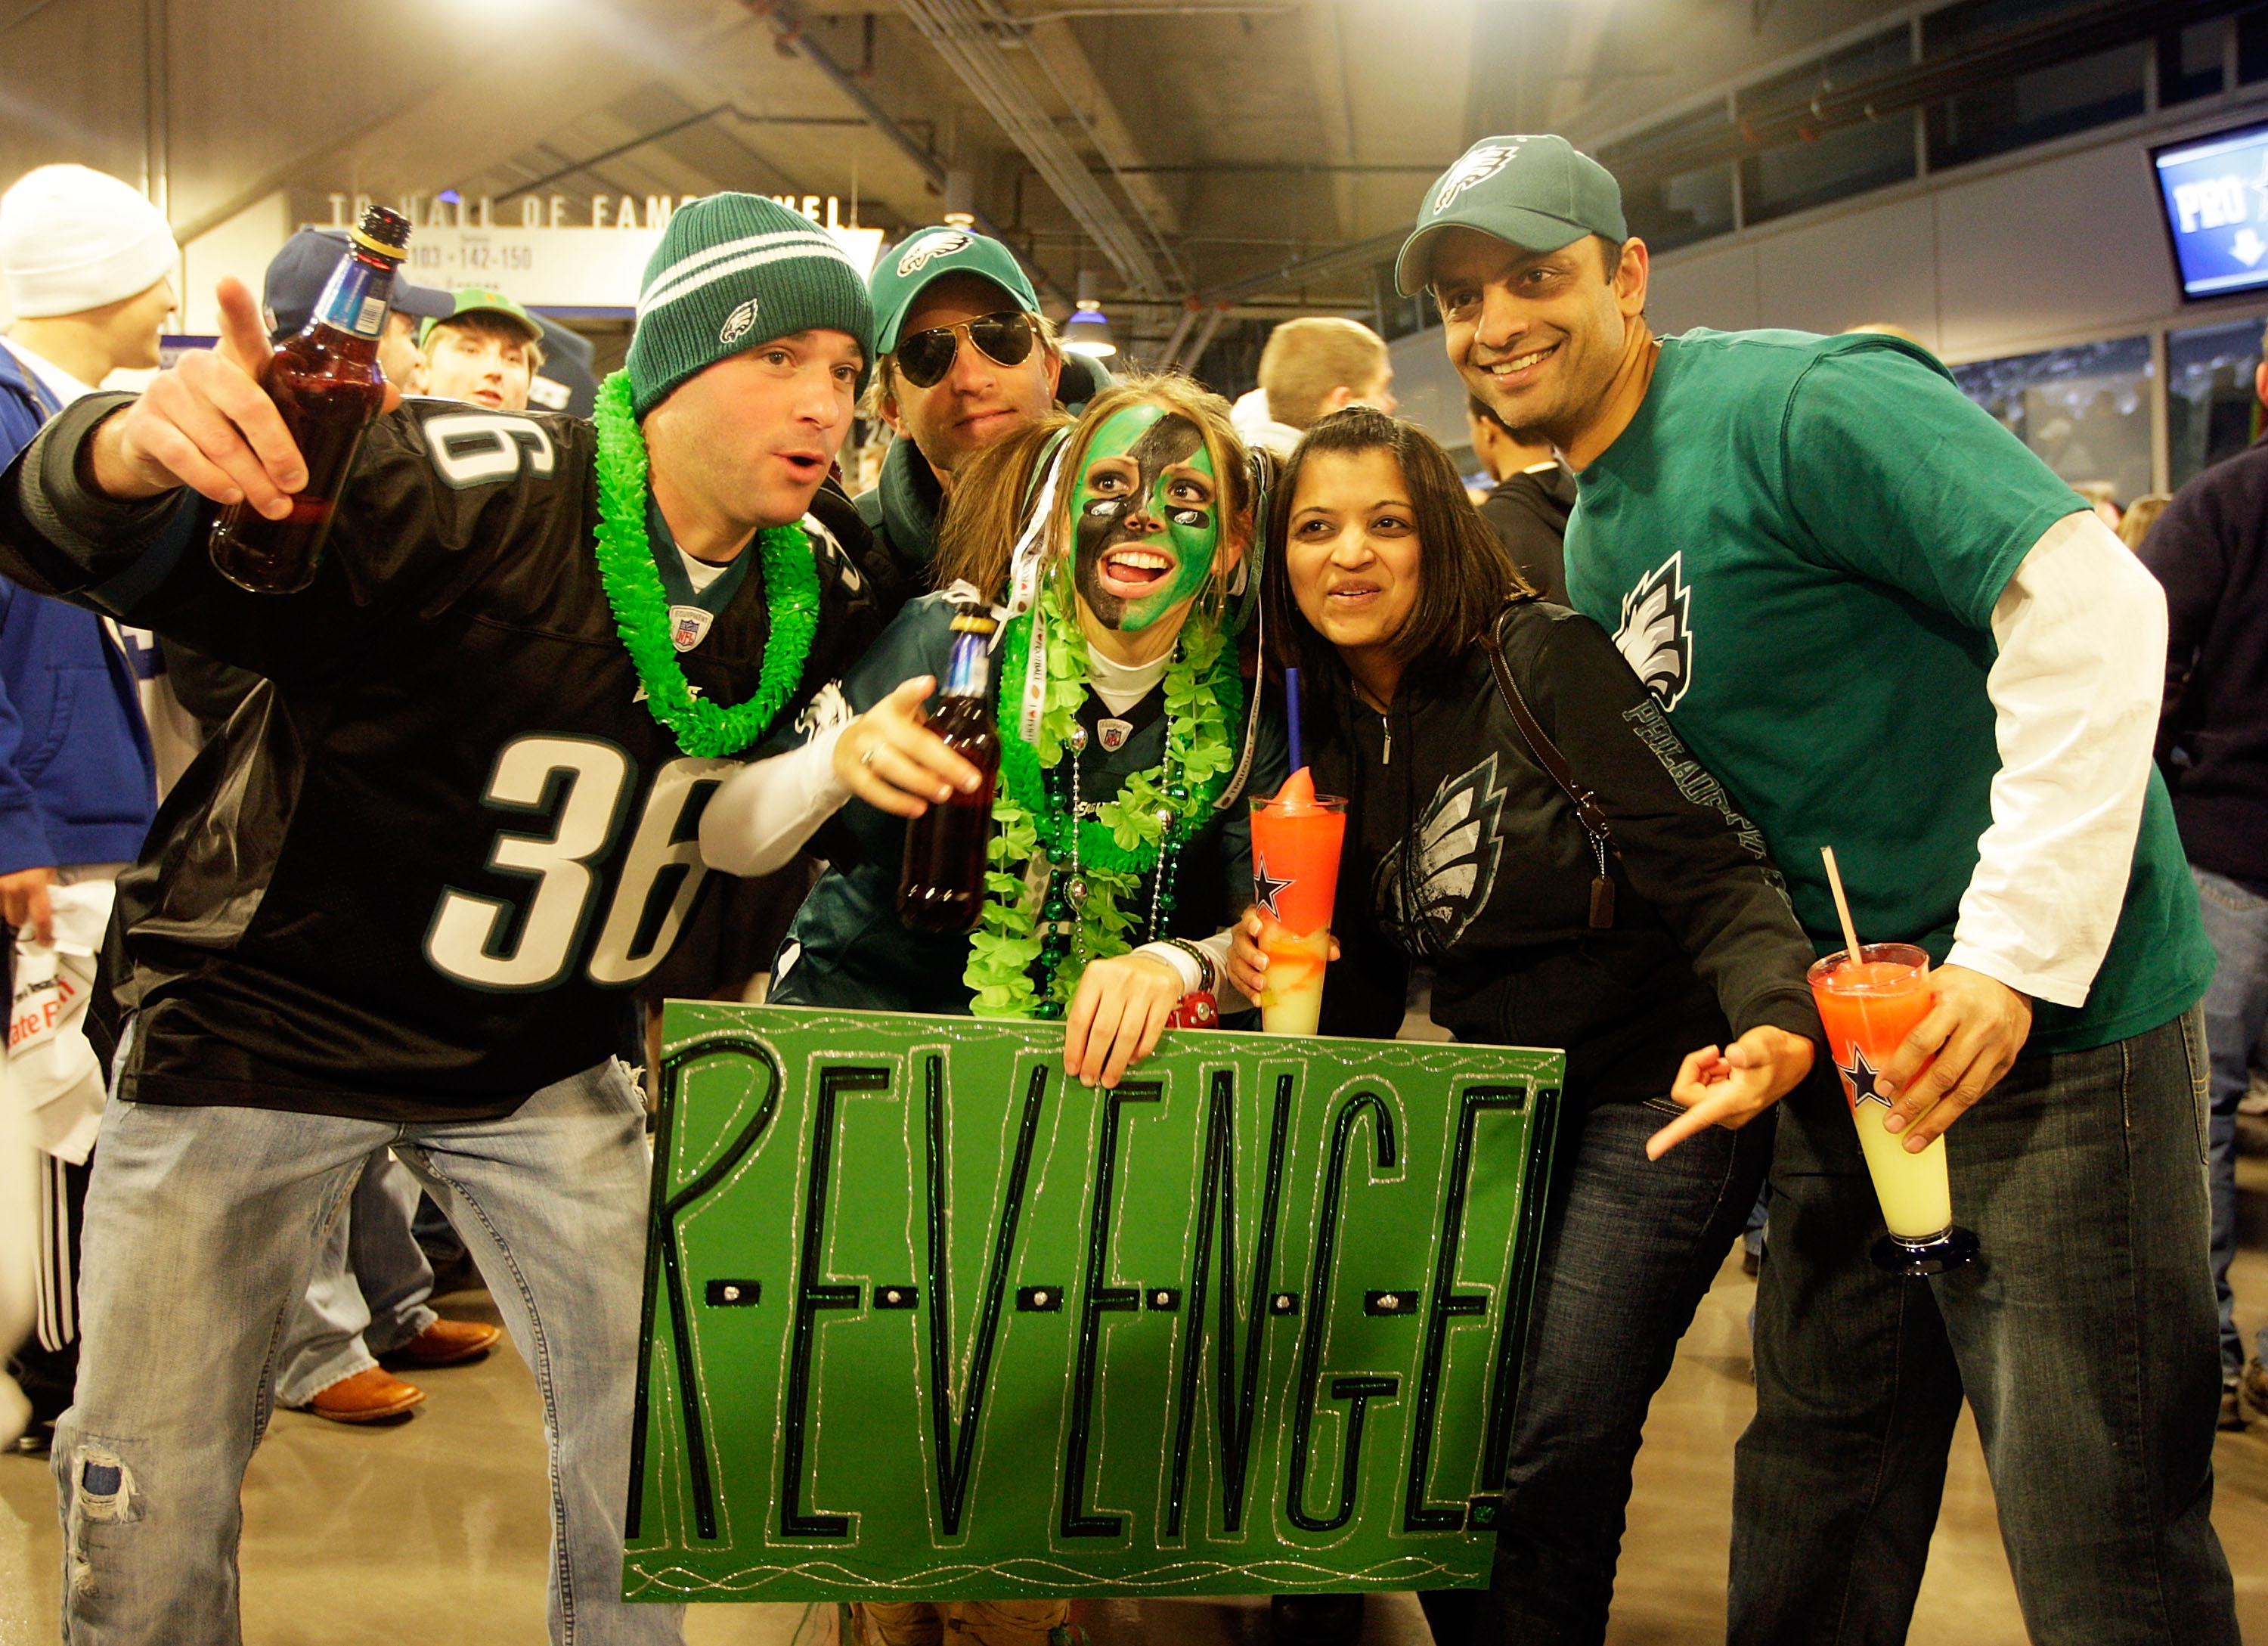 ARLINGTON, TX - JANUARY 09:  Philadelphia Eagles fans pose on the concourse prior to the start of the 2010 NFC wild-card playoff game against the Dallas Cowboys on January 9, 2010 at Cowboys Stadium in Arlington, Texas.  (Photo by Jamie Squire/Getty Image